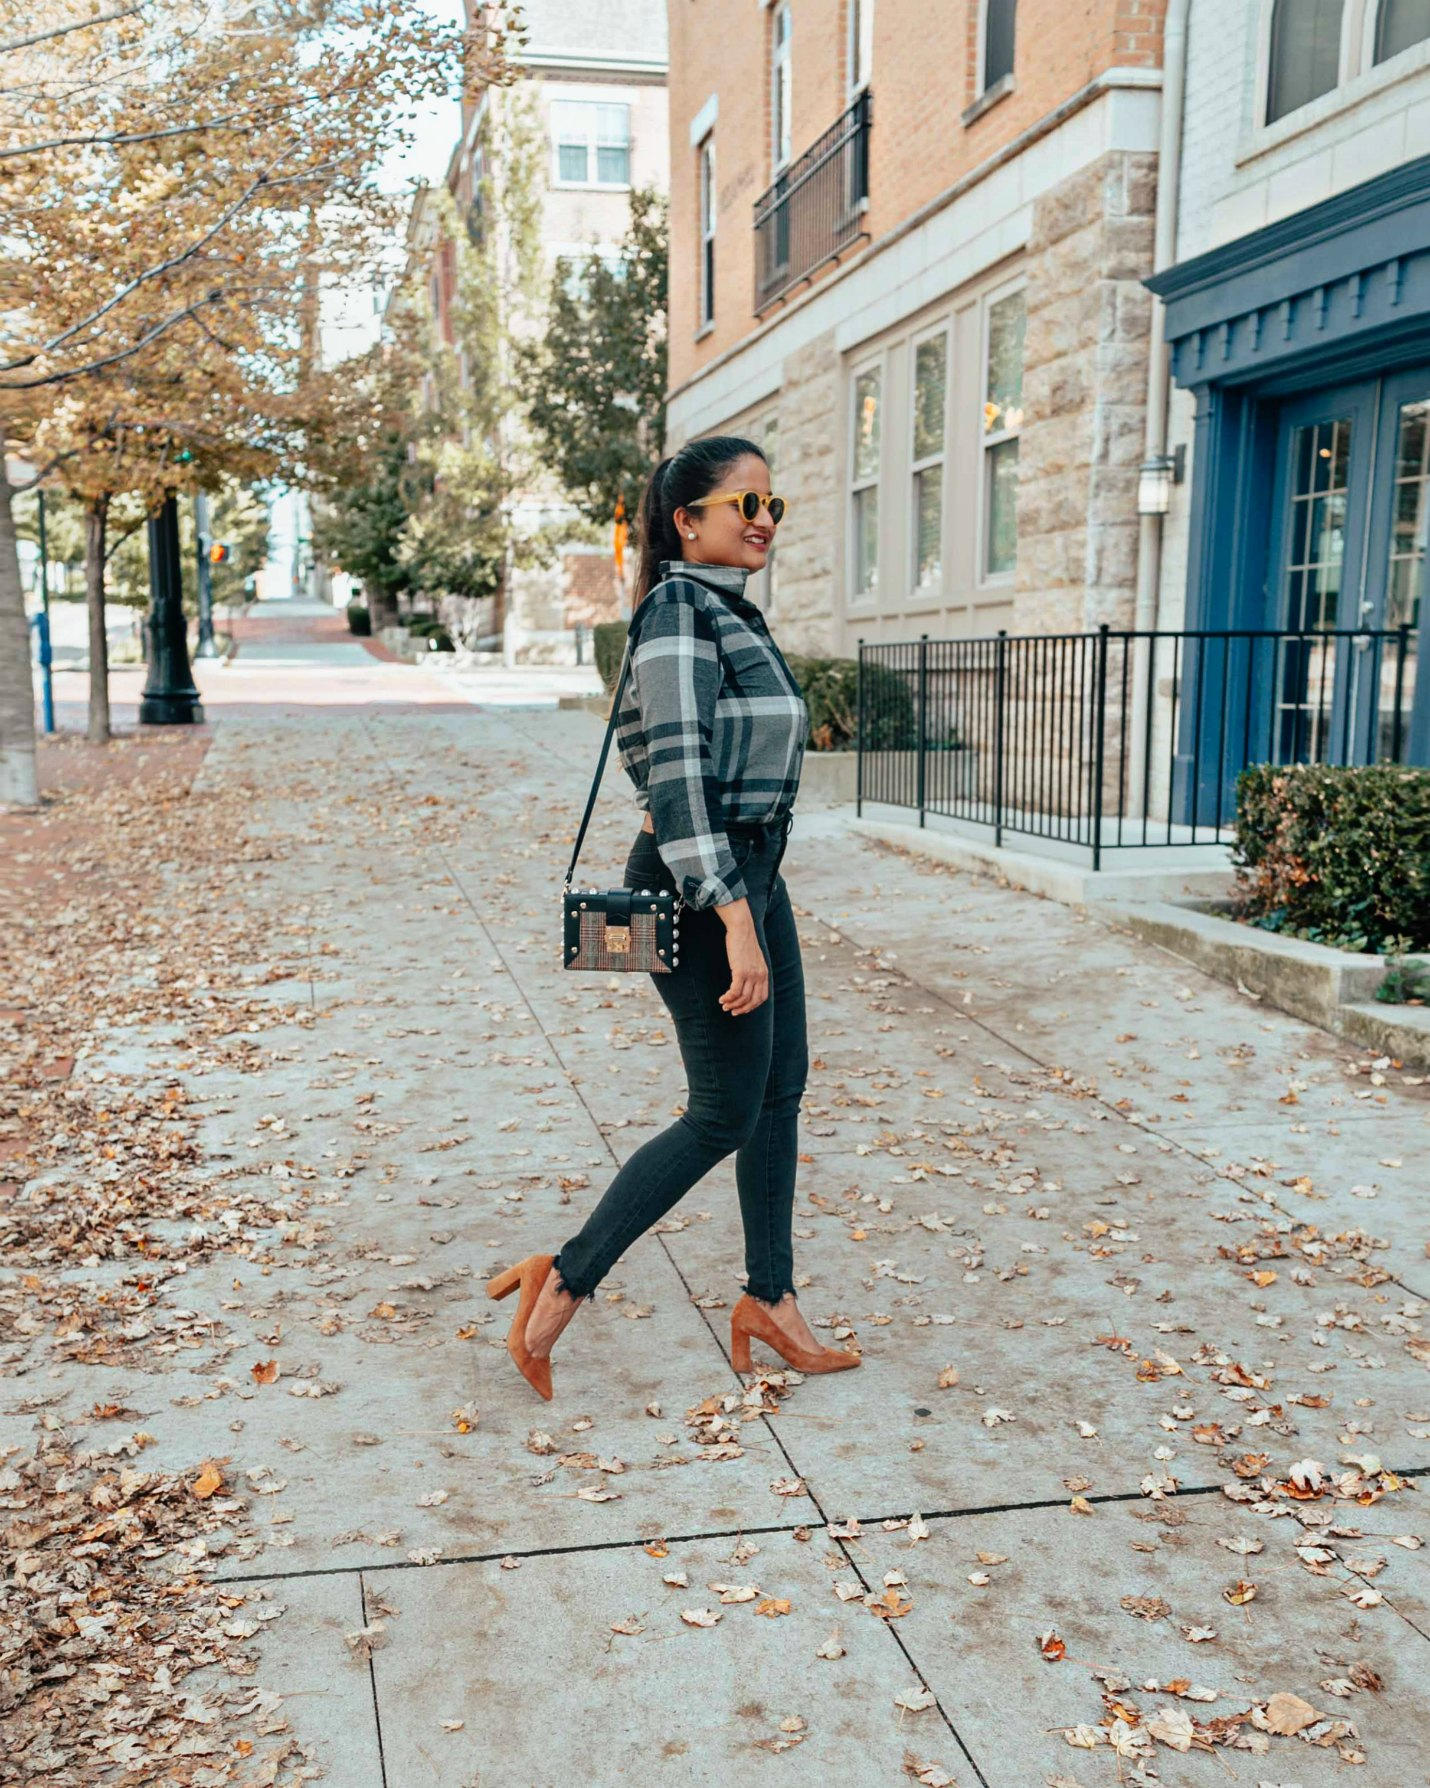 wearing Eddie Bauer Women's Stine's Favorite Flannel Shirt | Eddie Bauer boyfriend flannel shirt styled 4 ways, featured by top US modest fashion blog, Dreaming Loud